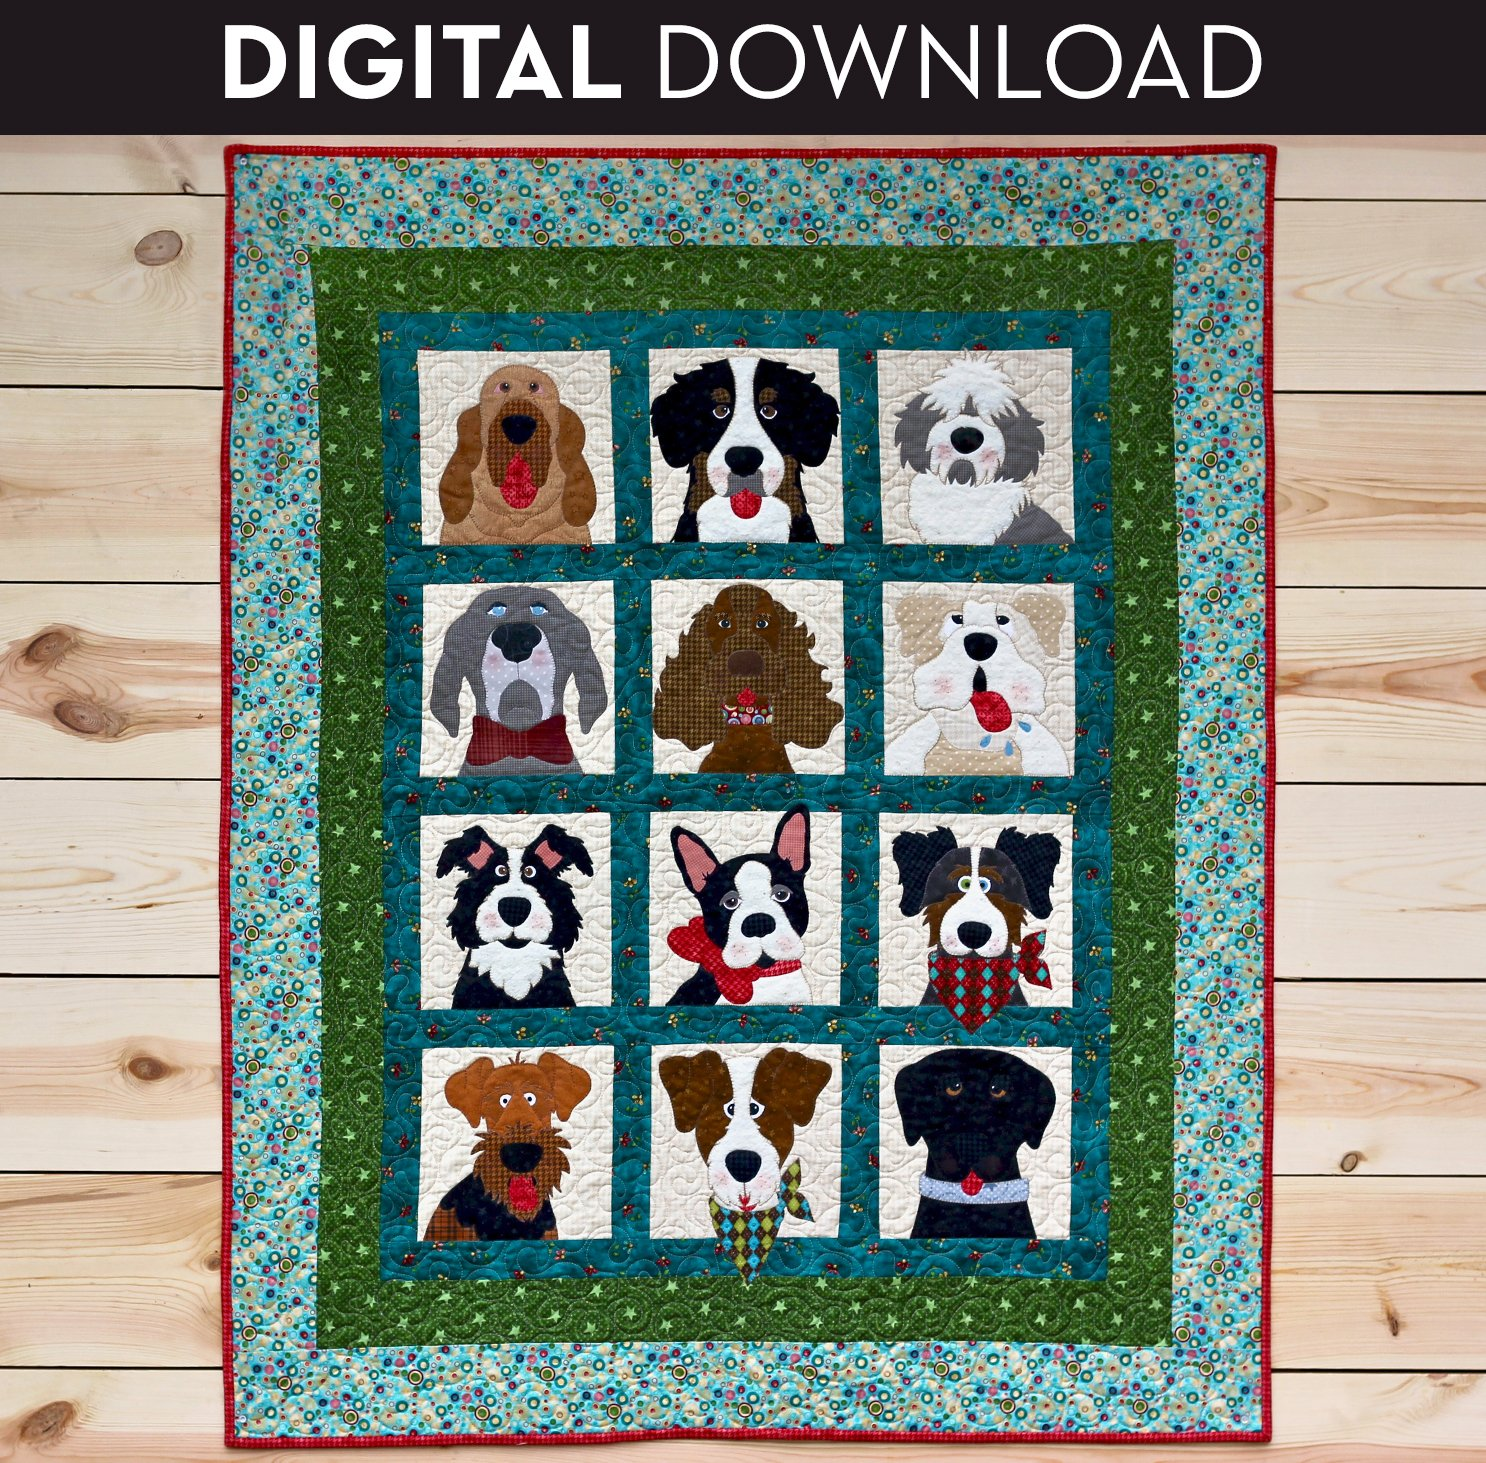 Doggies in the Window - Download